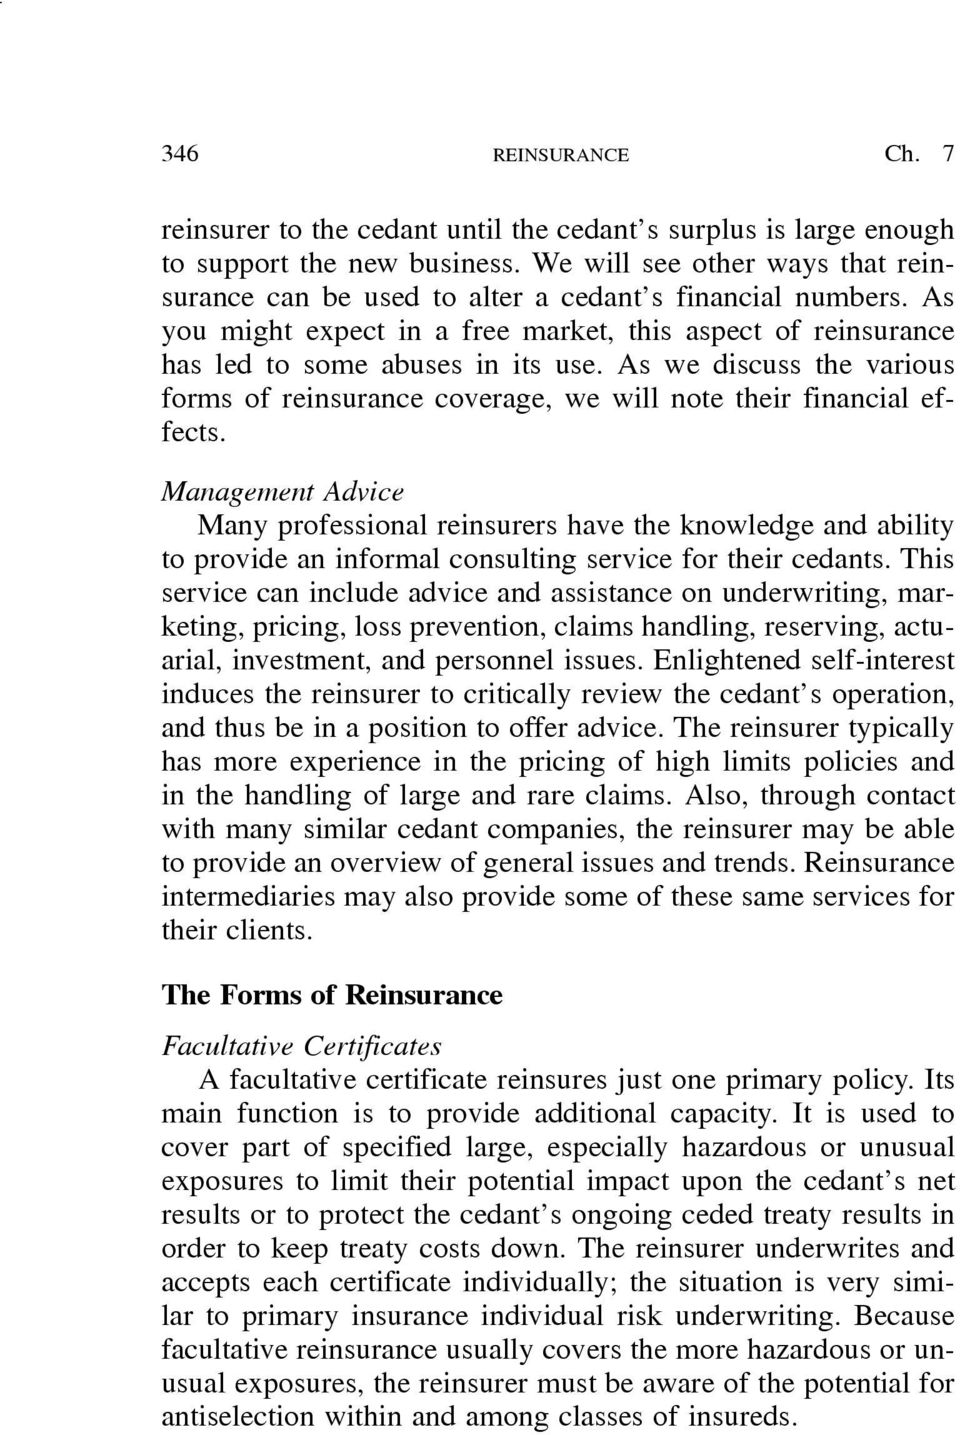 As we discuss the various forms of reinsurance coverage, we will note their financial effects.